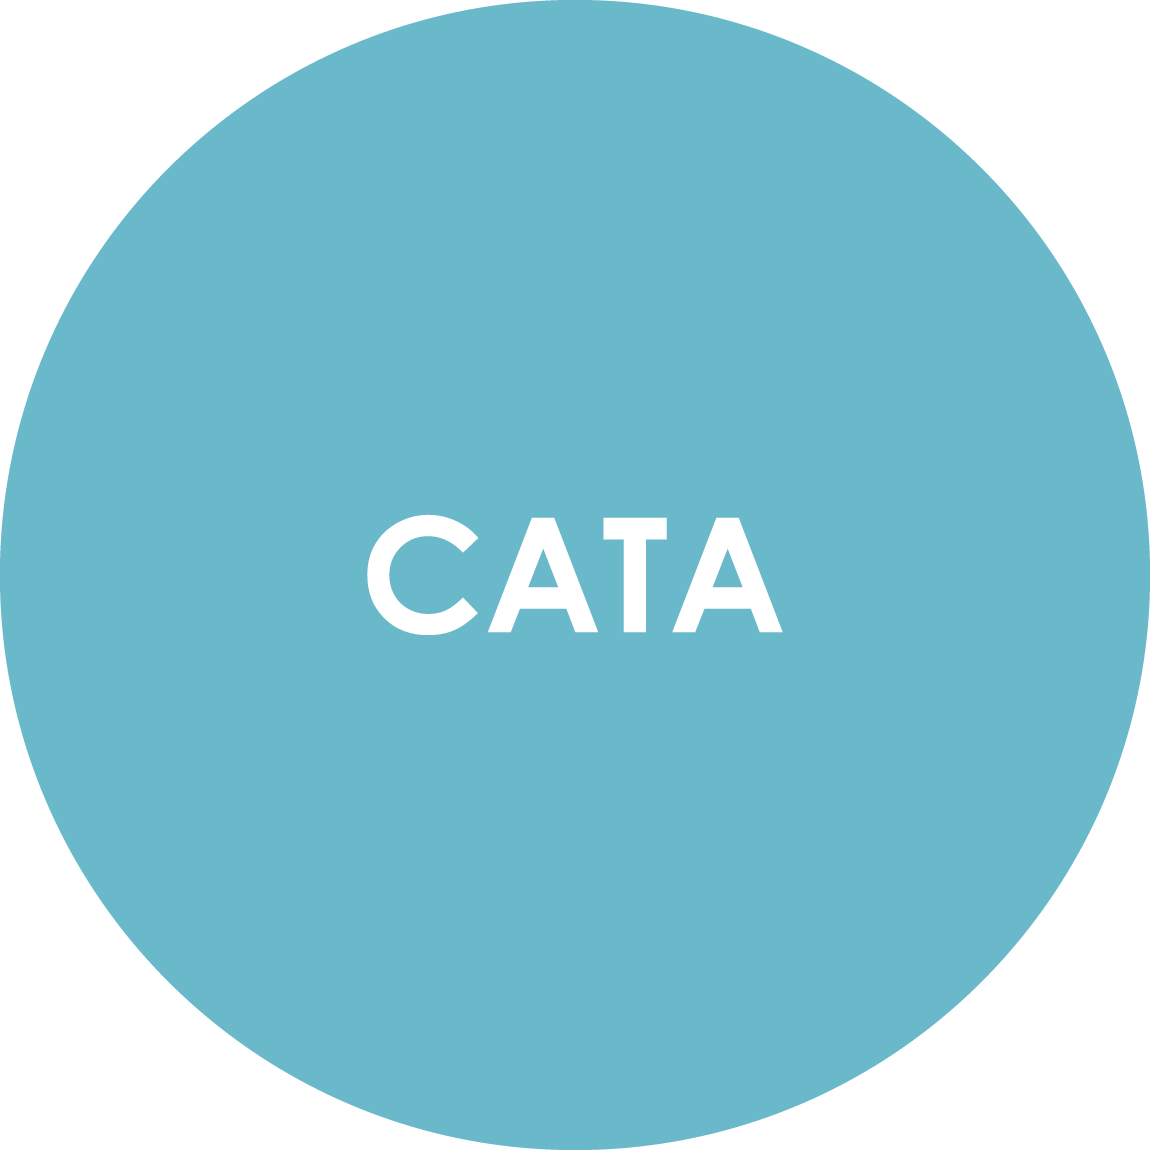 Cata Bubble Text